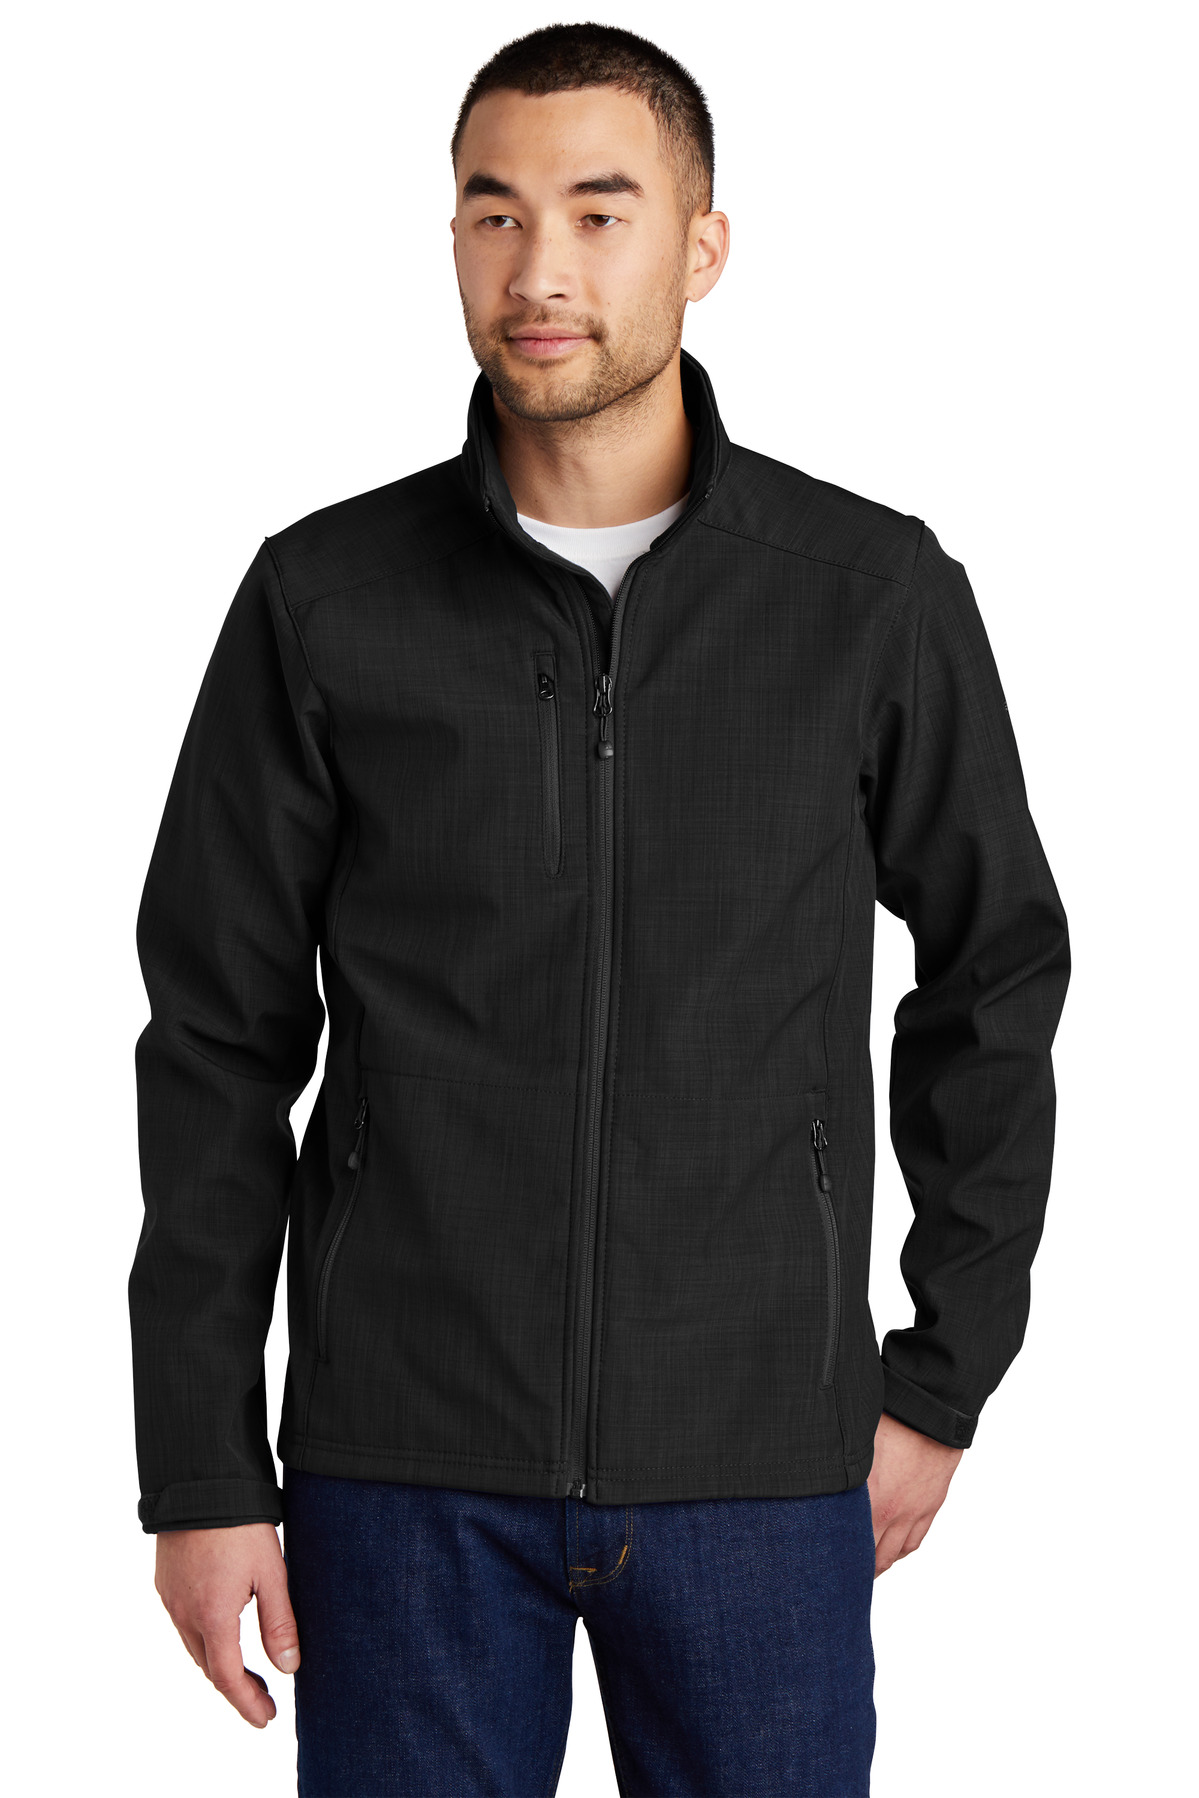 Eddie Bauer ®  Shaded Crosshatch Soft Shell Jacket. EB532 - Black